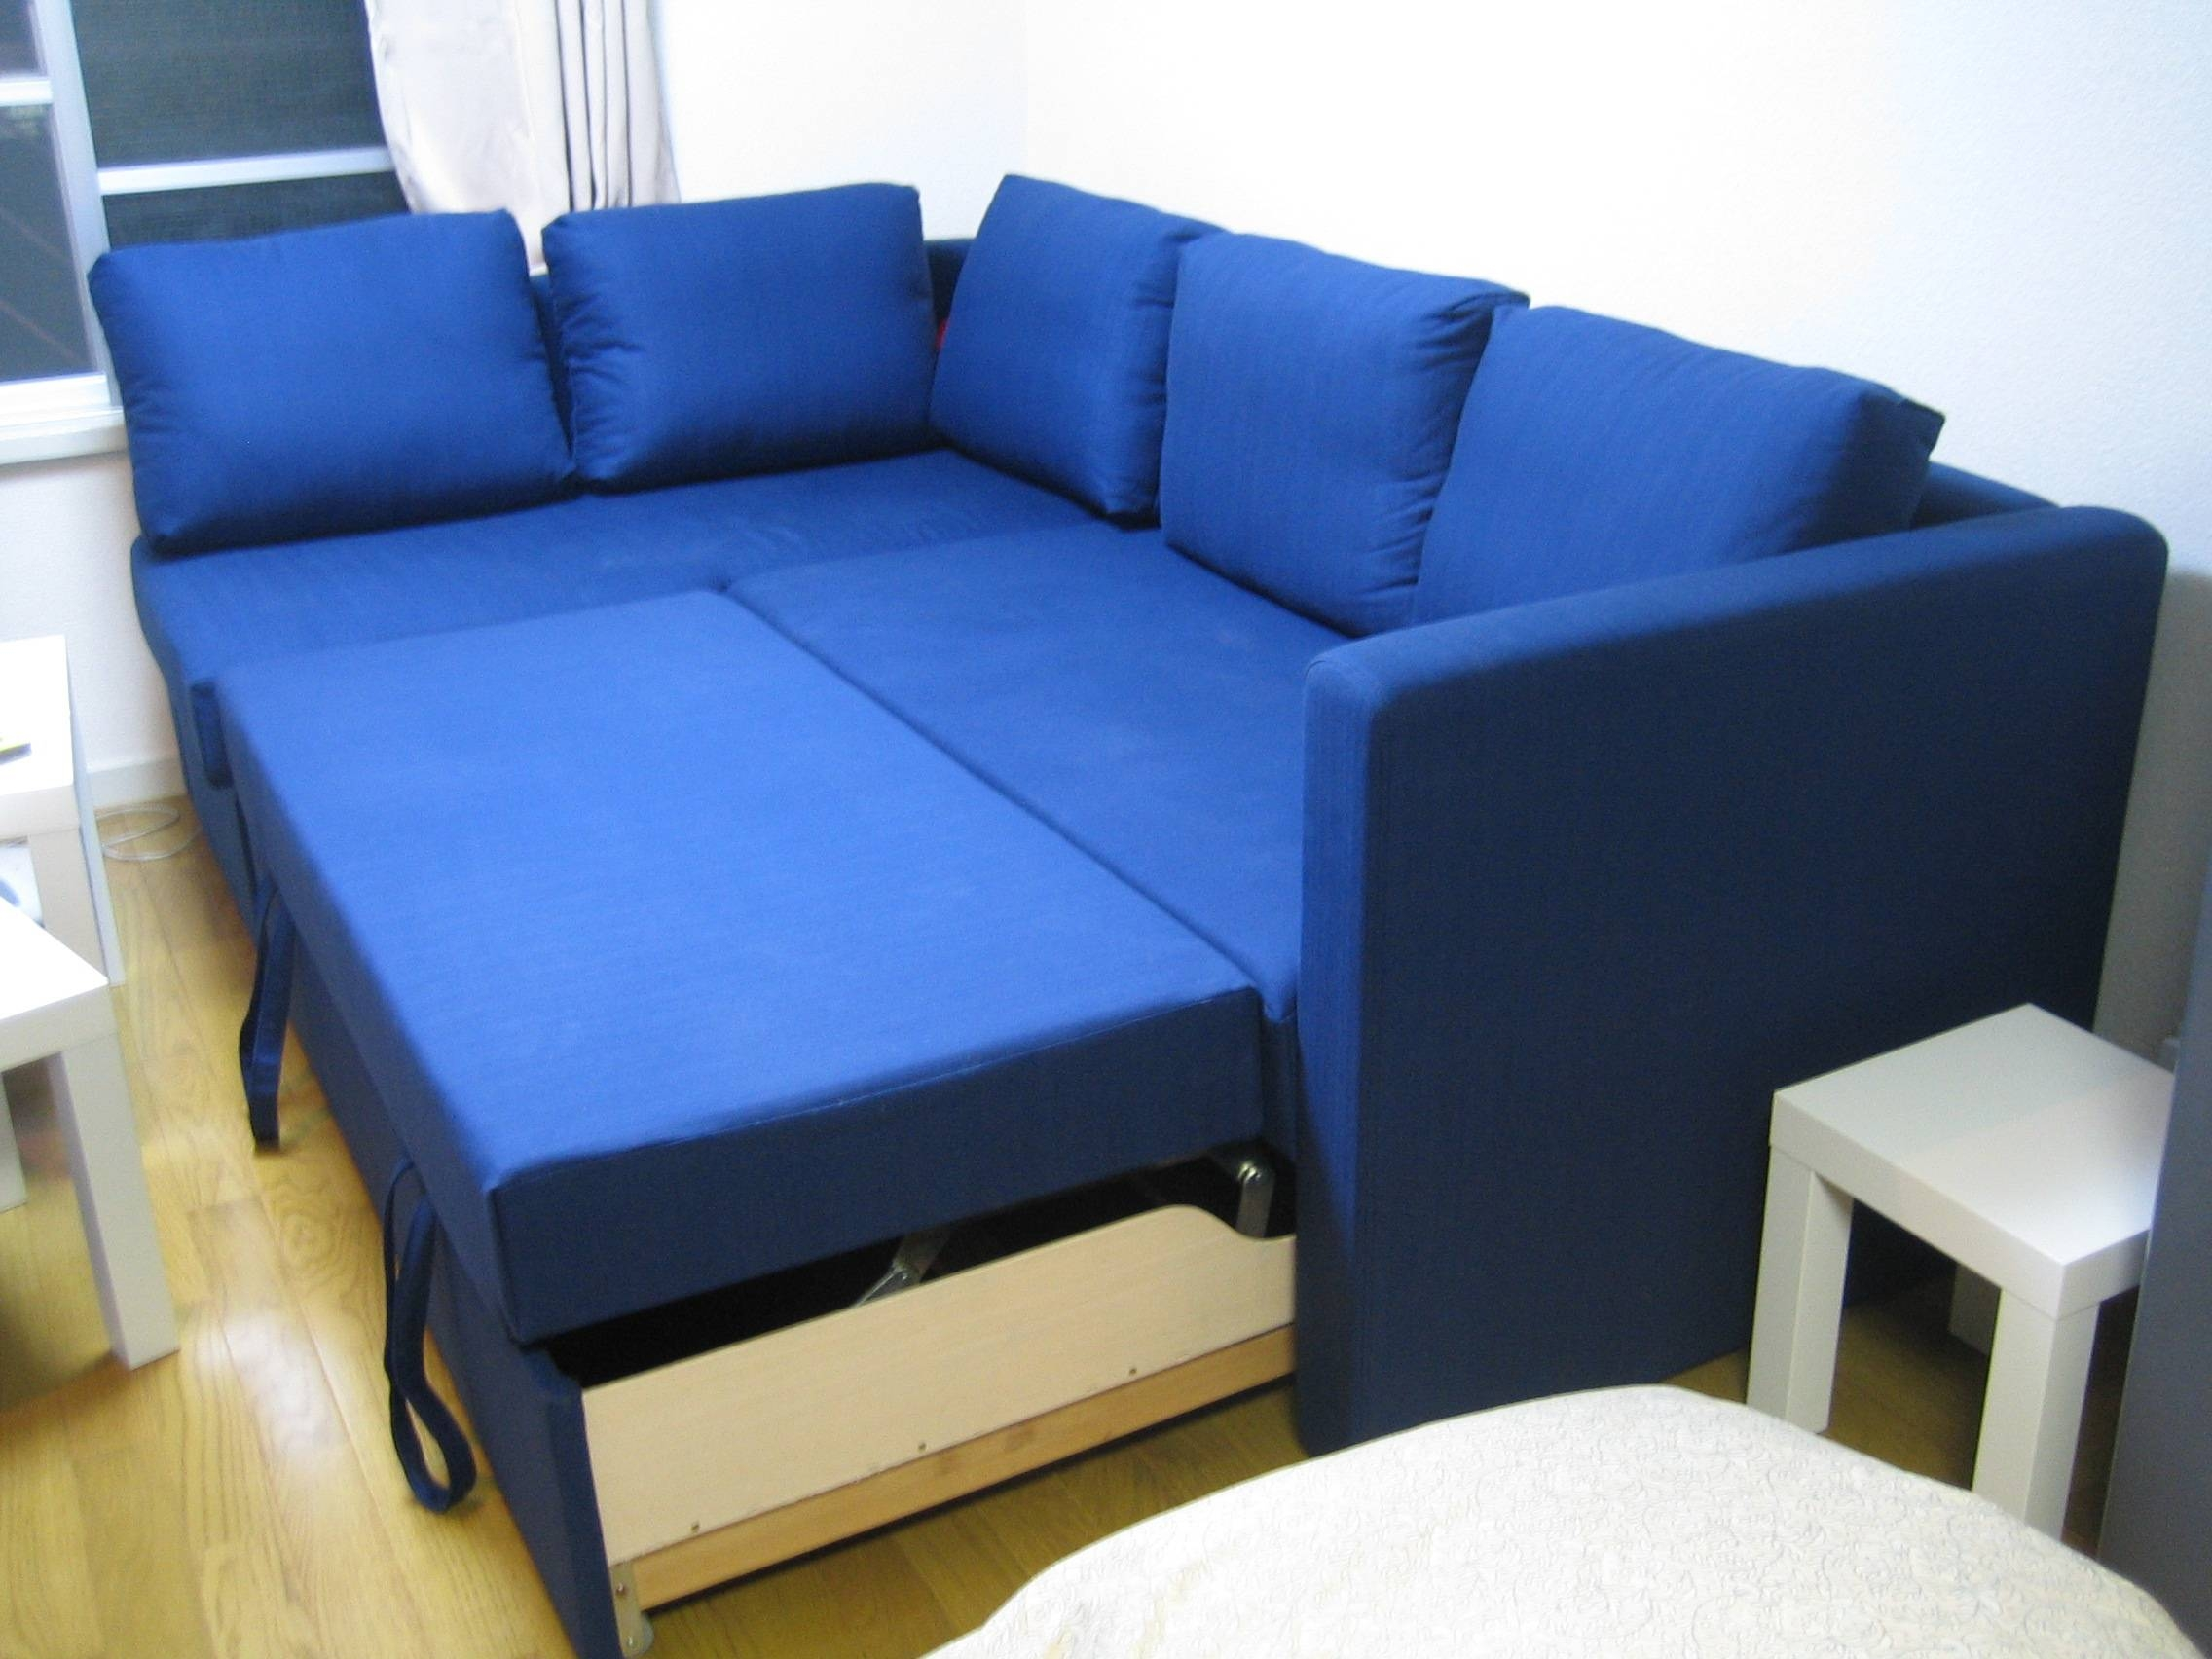 Furniture: Cozy Sleeper Sofa Ikea For Best Sleeper Sofa Ideas in King Size Sleeper Sofa Sectional (Image 11 of 30)